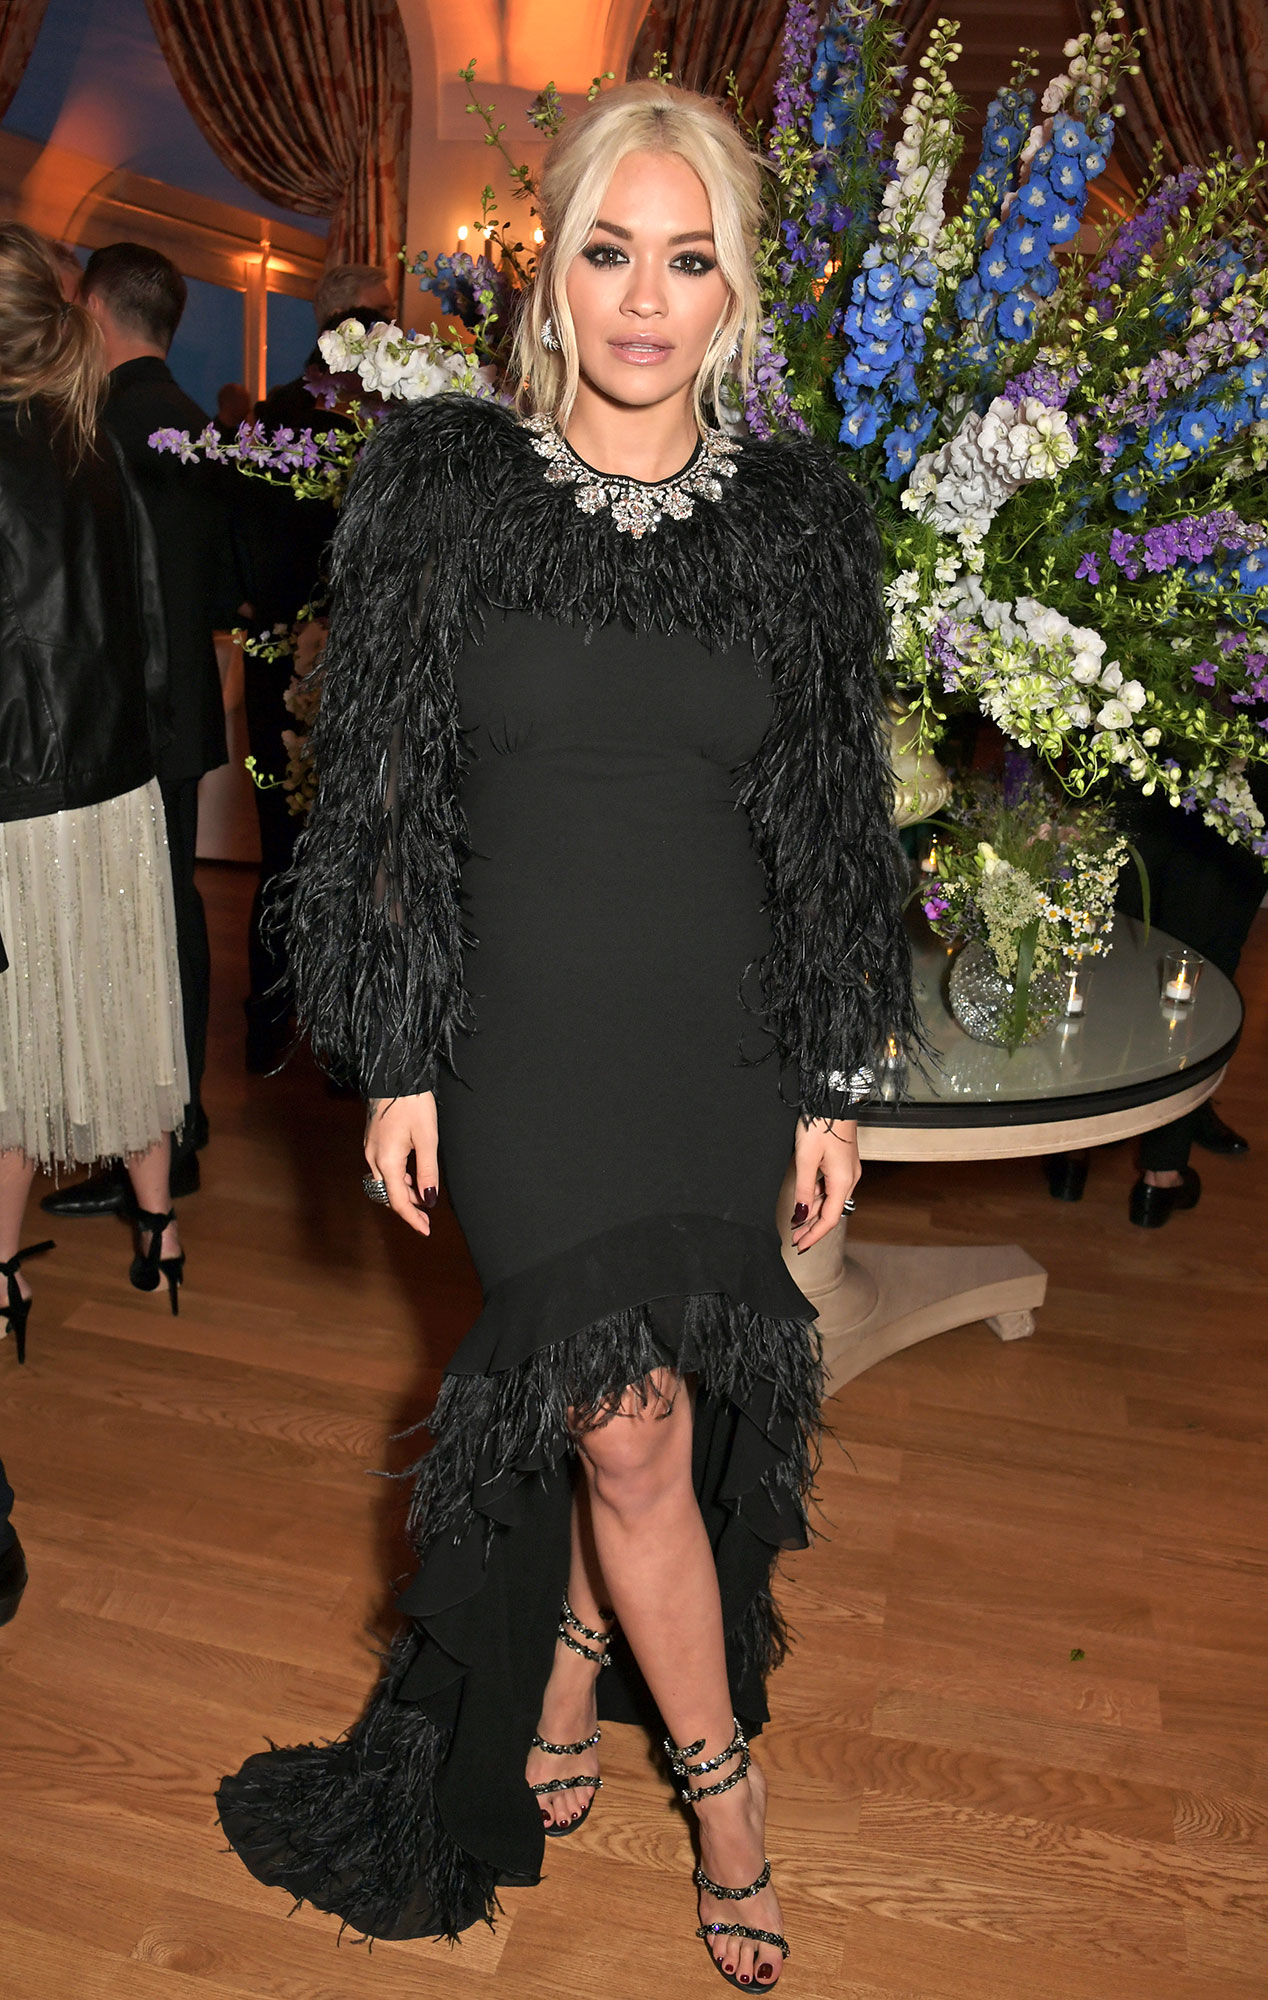 Rita Ora Stepping Out in Style at Cannes Film Festival - Black was anything but boring for the songstress in a feathery Michael Kors gown and embellished Rene Caovilla sandals at the Filmmakers Dinner on Friday, May 17.